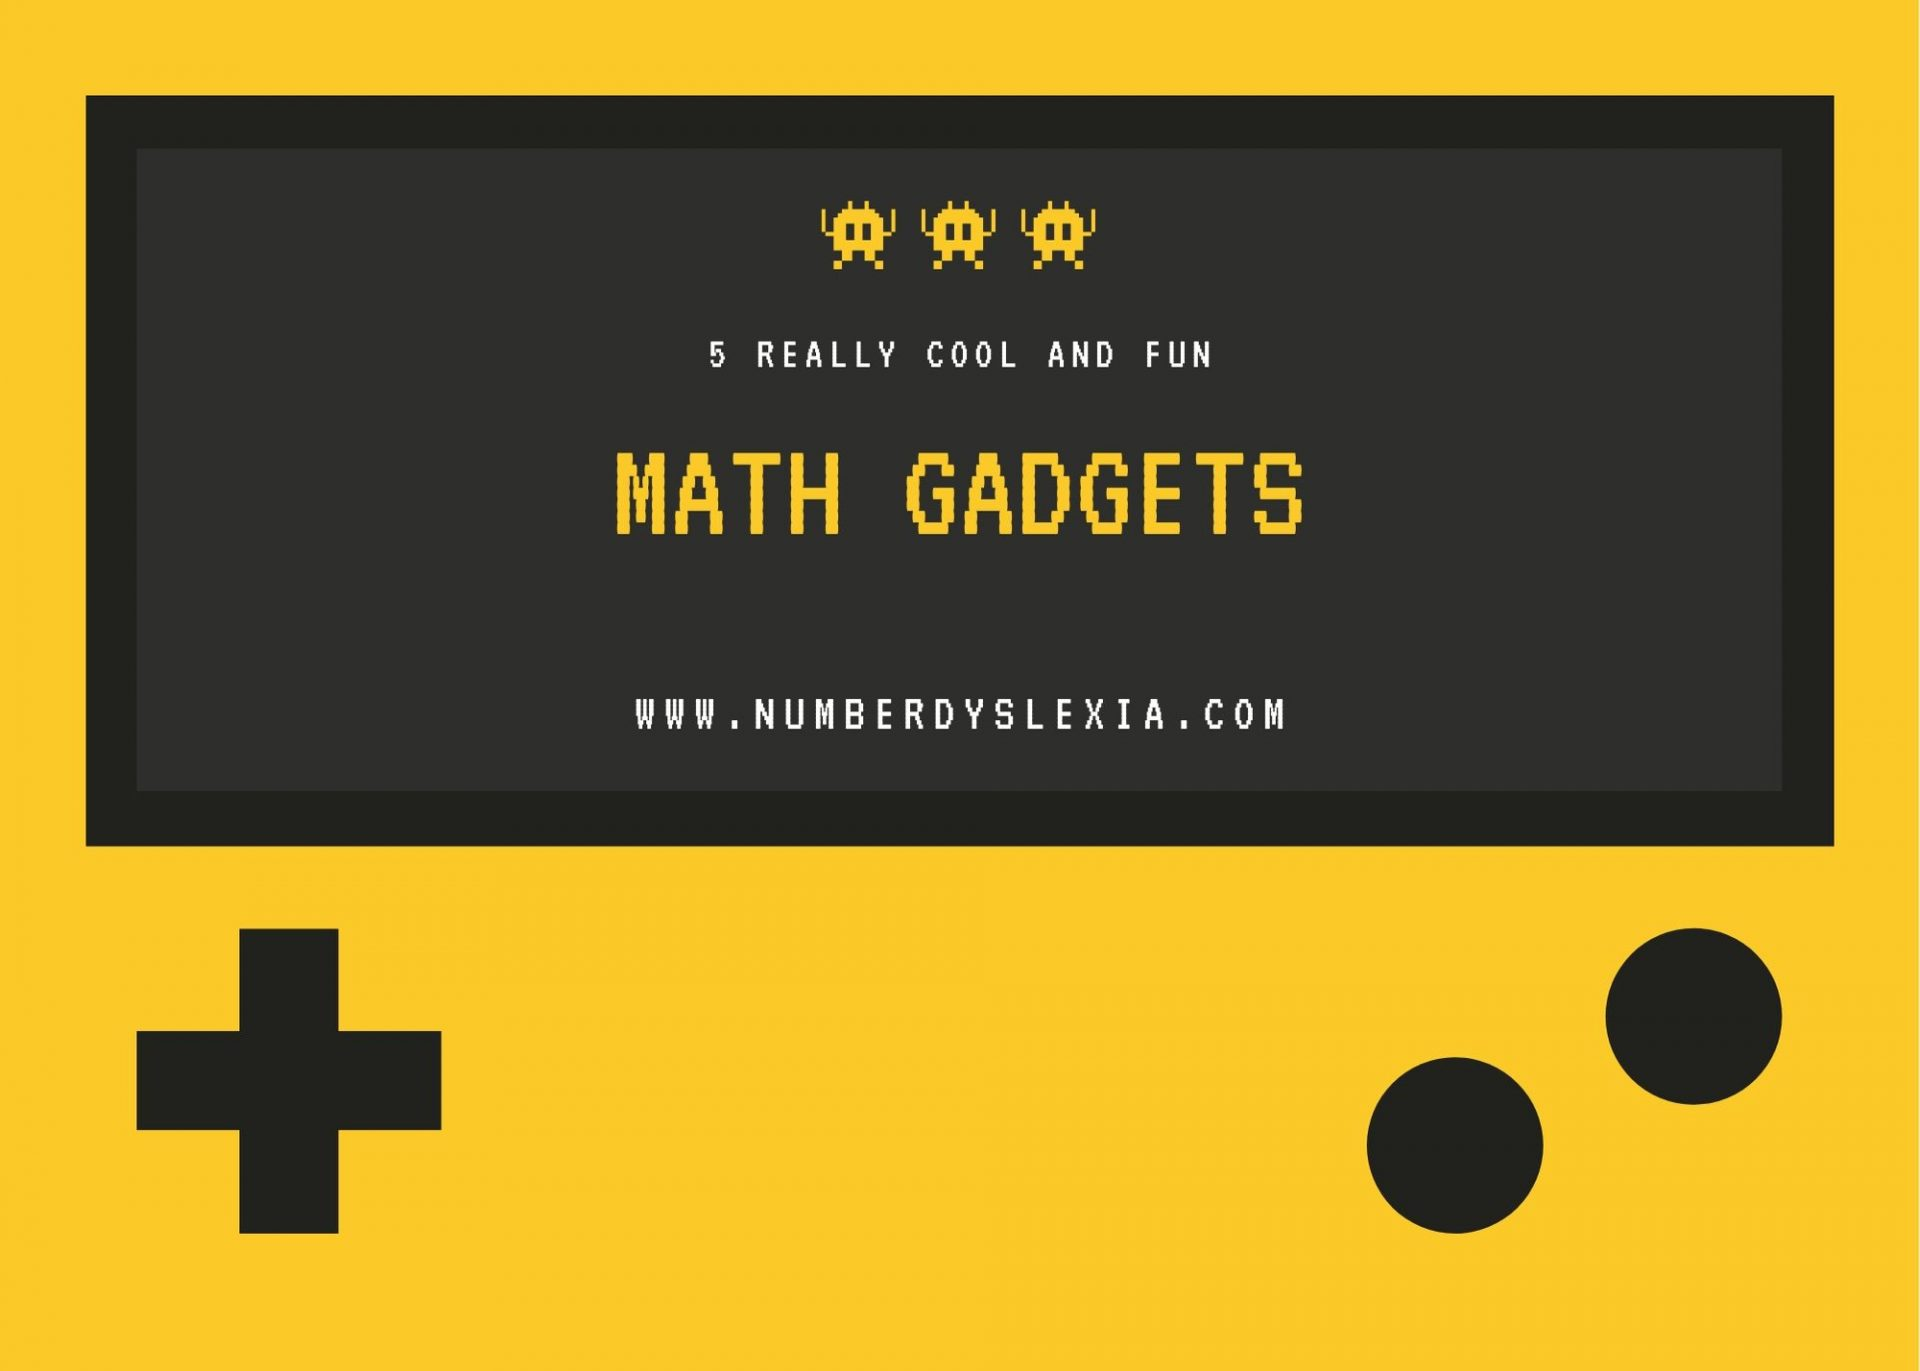 list of 5 really cool and fun math related gadgets